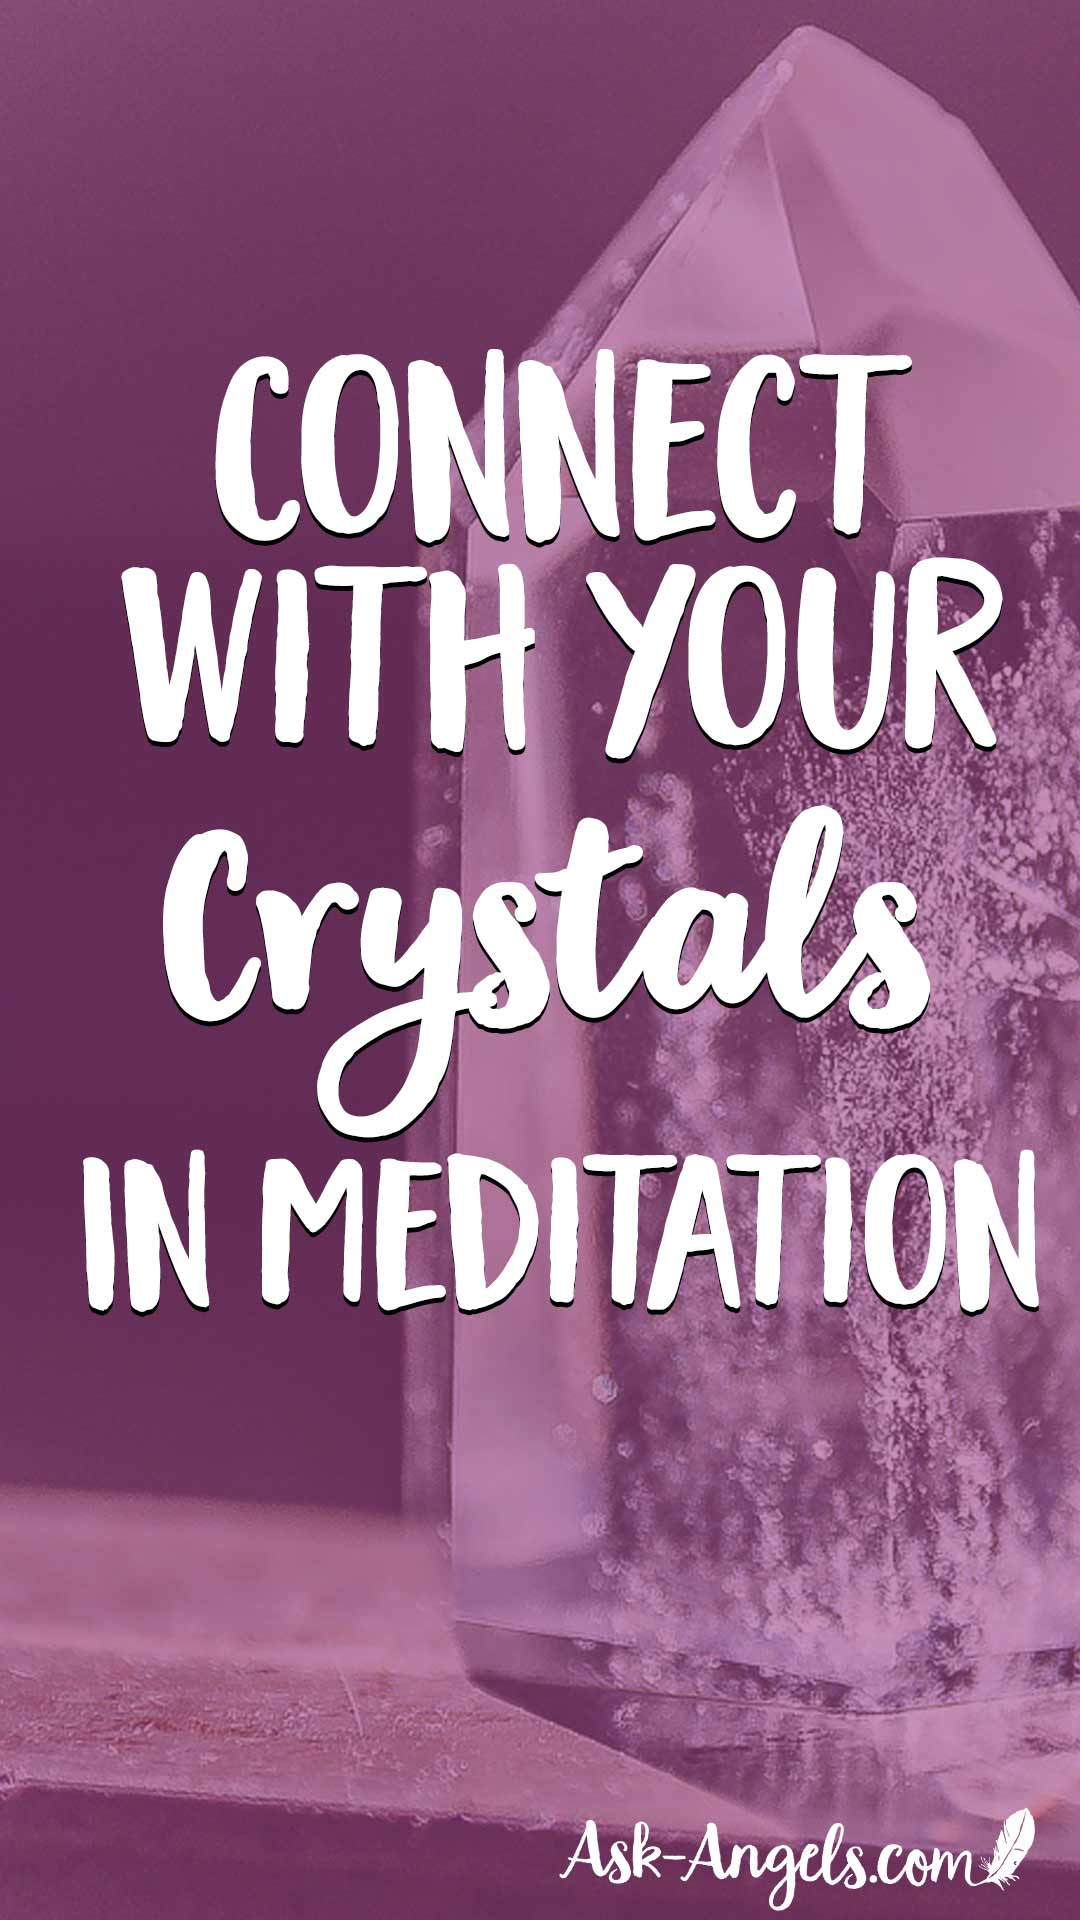 Learn a simple meditation technique to connect with your crystals in meditation